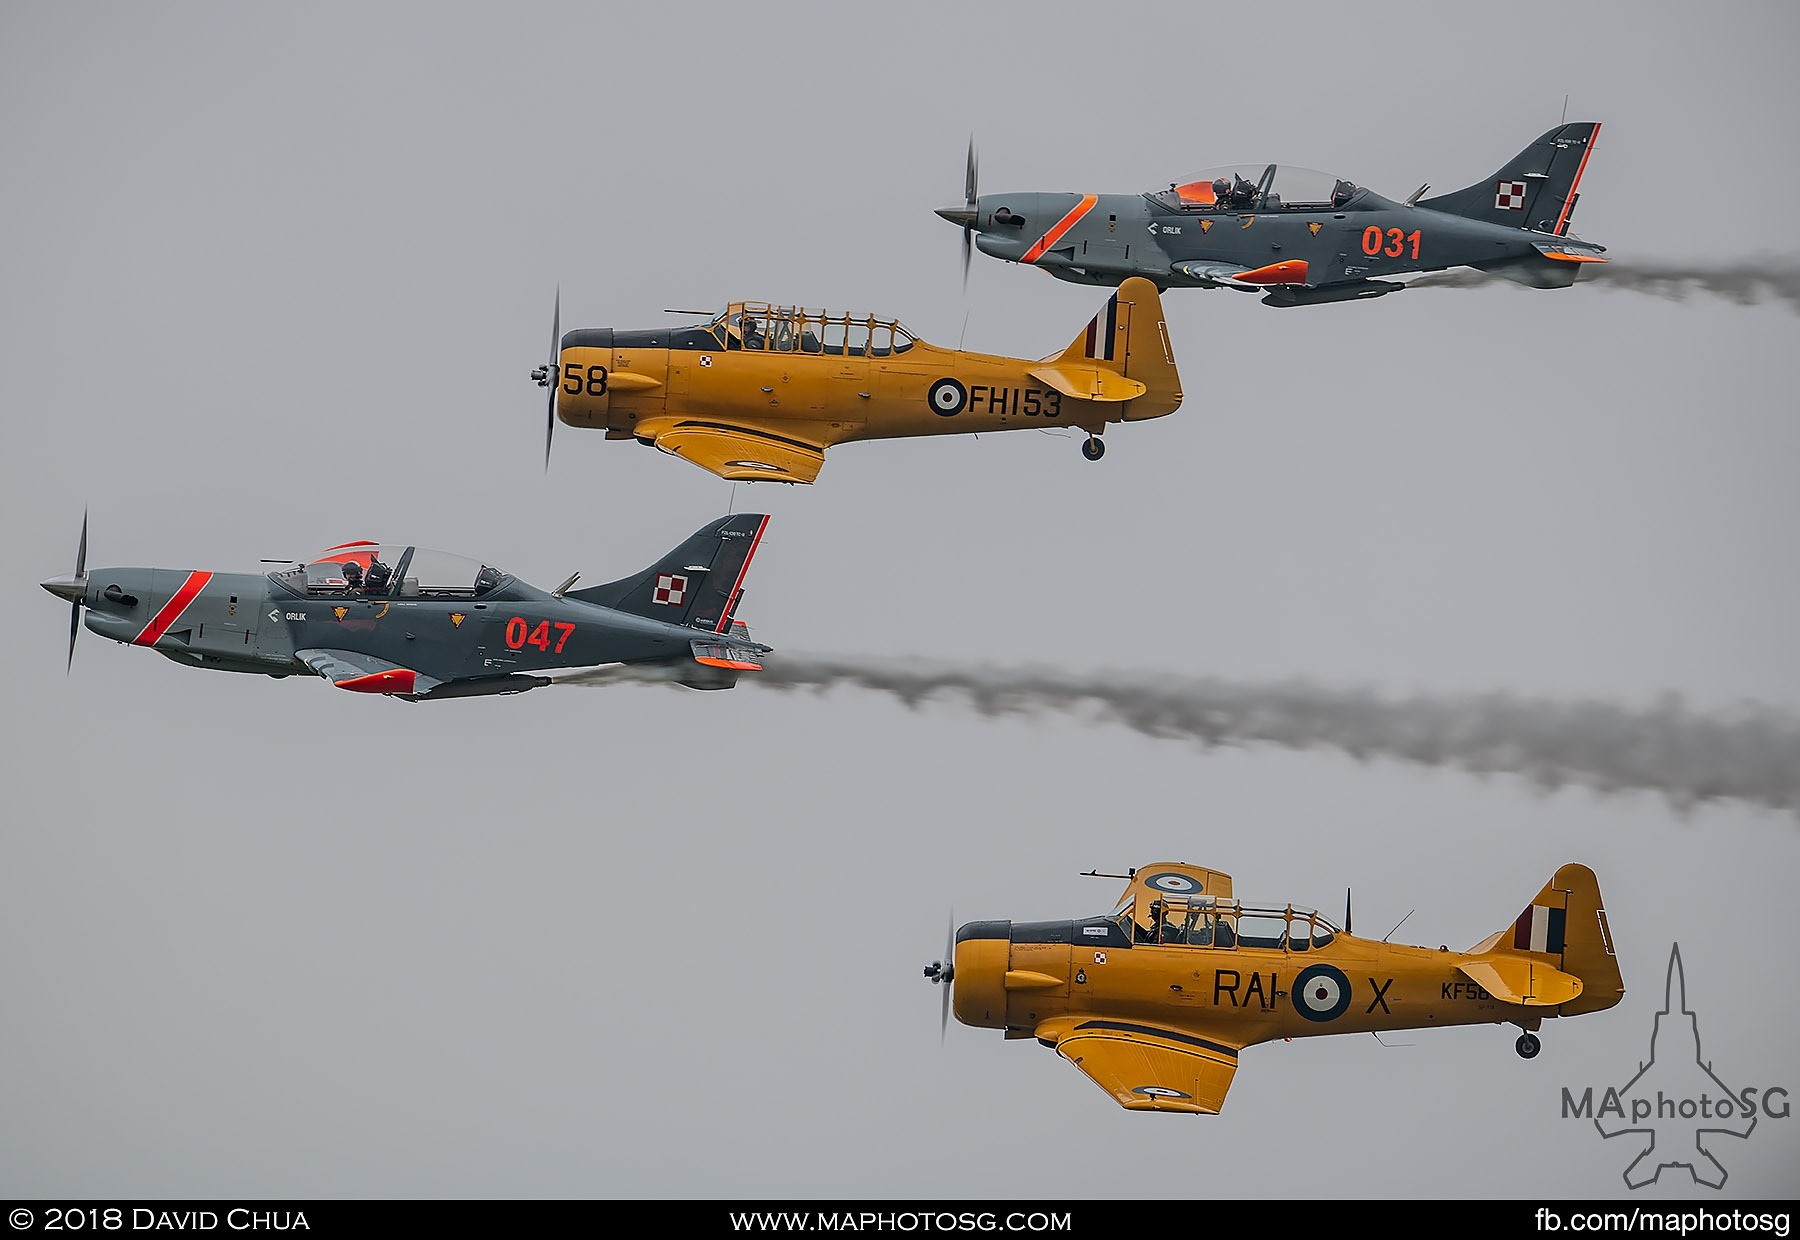 18. T6 Harwards and Team Orlik PZL-130s